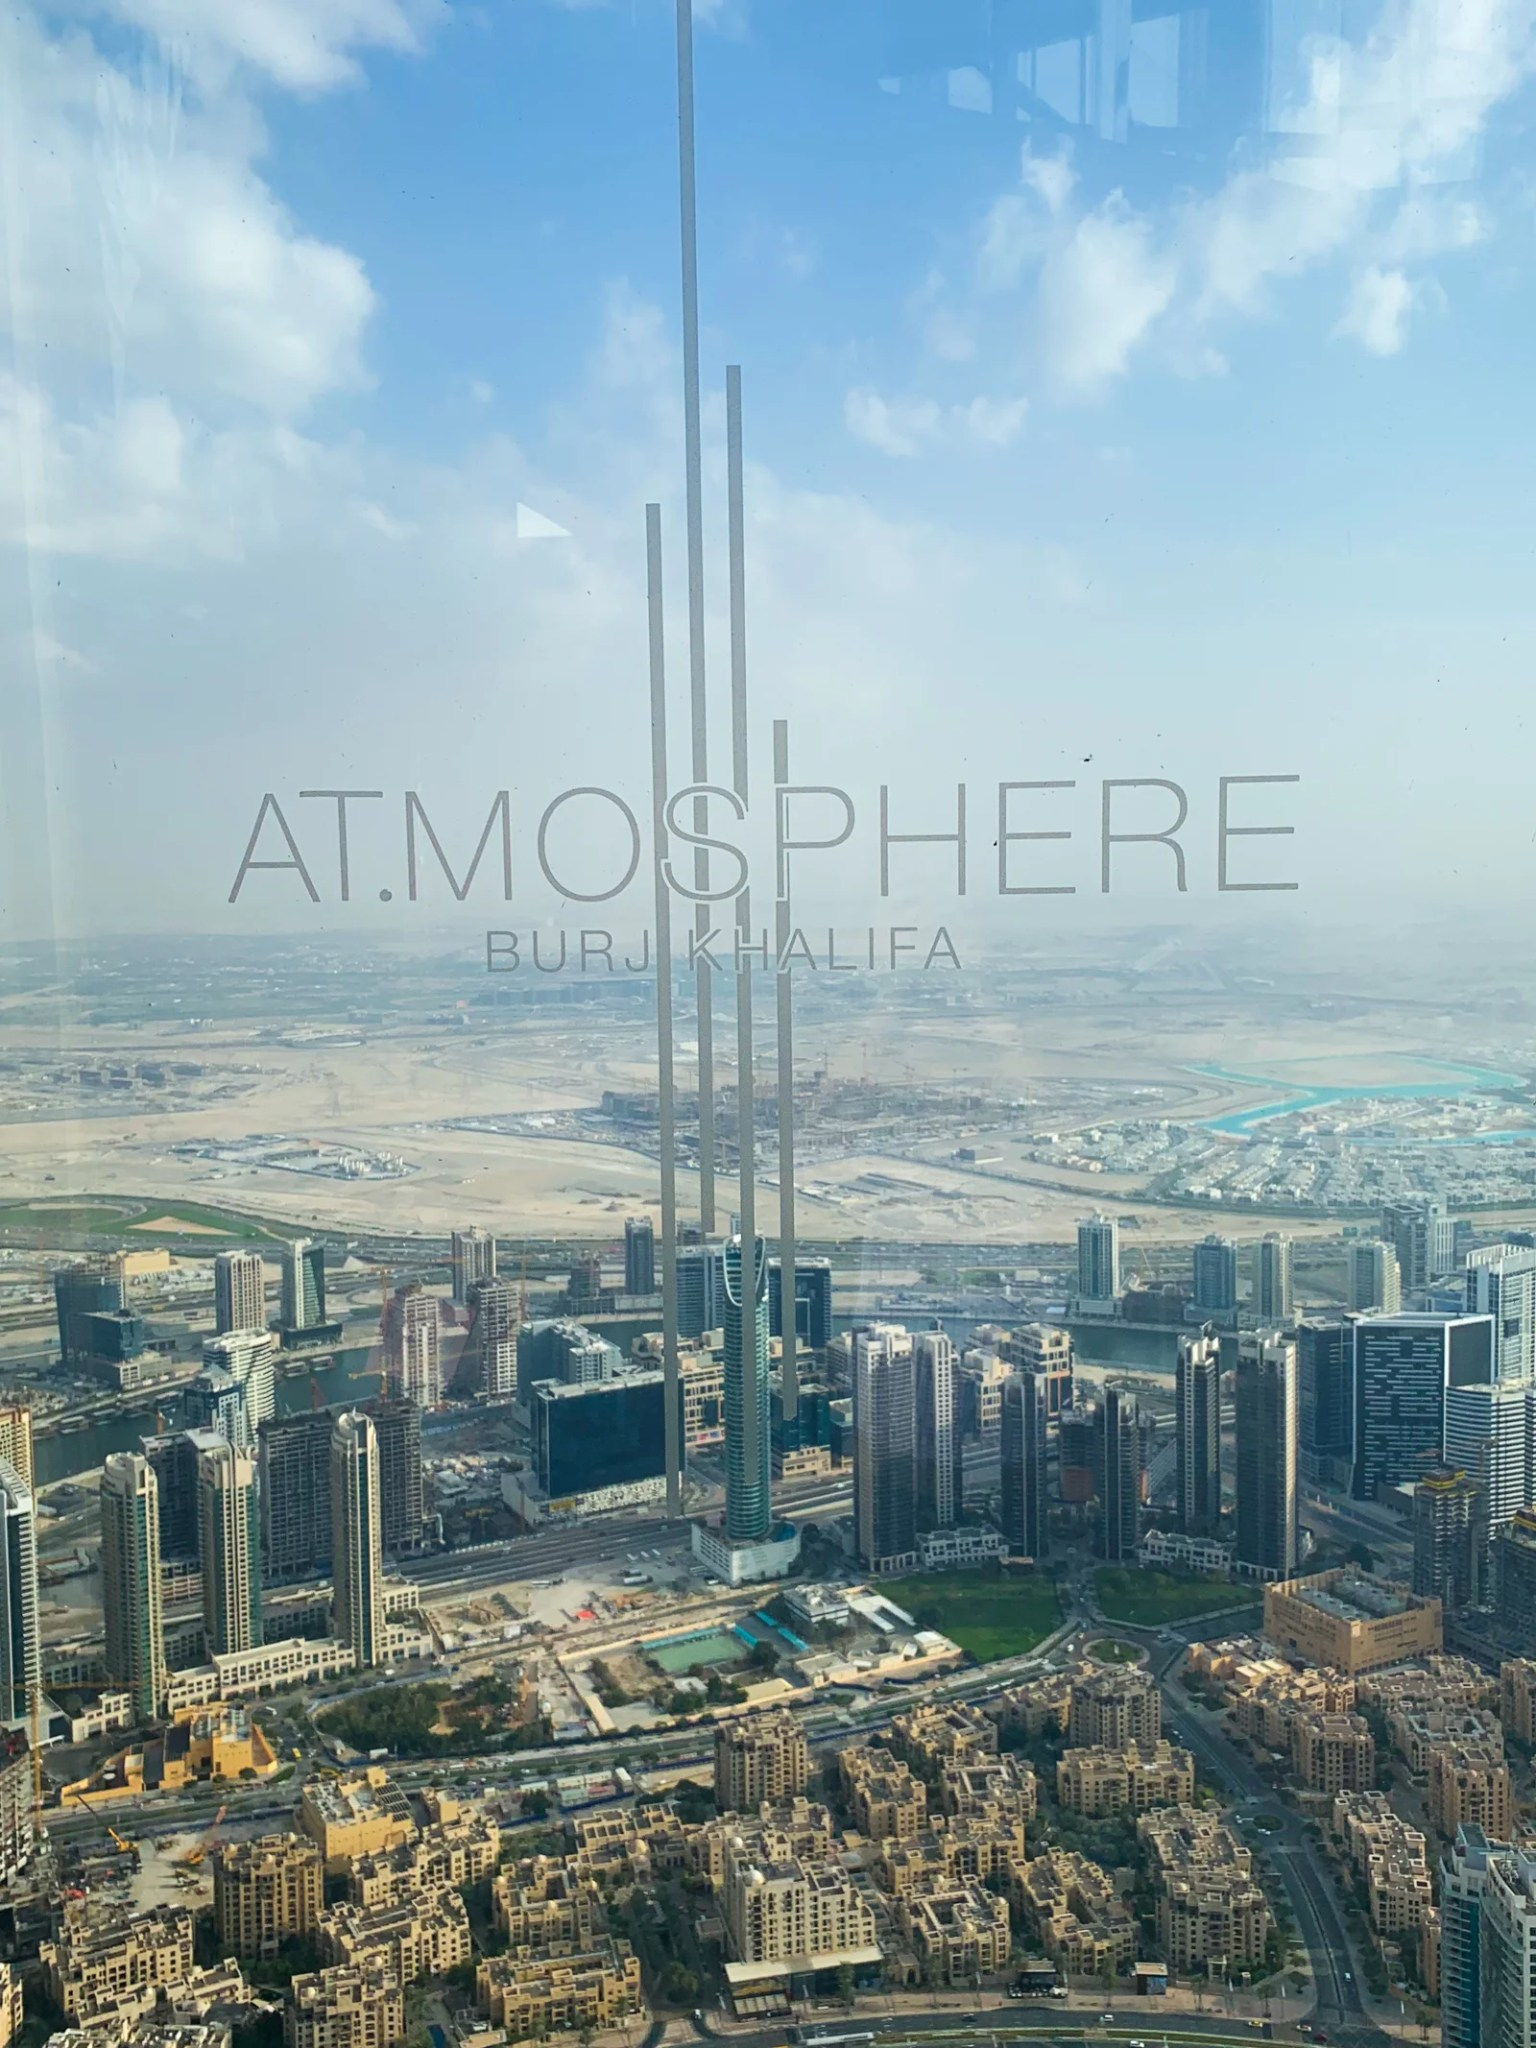 Dining at At mosphere Atop the Burj Khalifa in Dubai